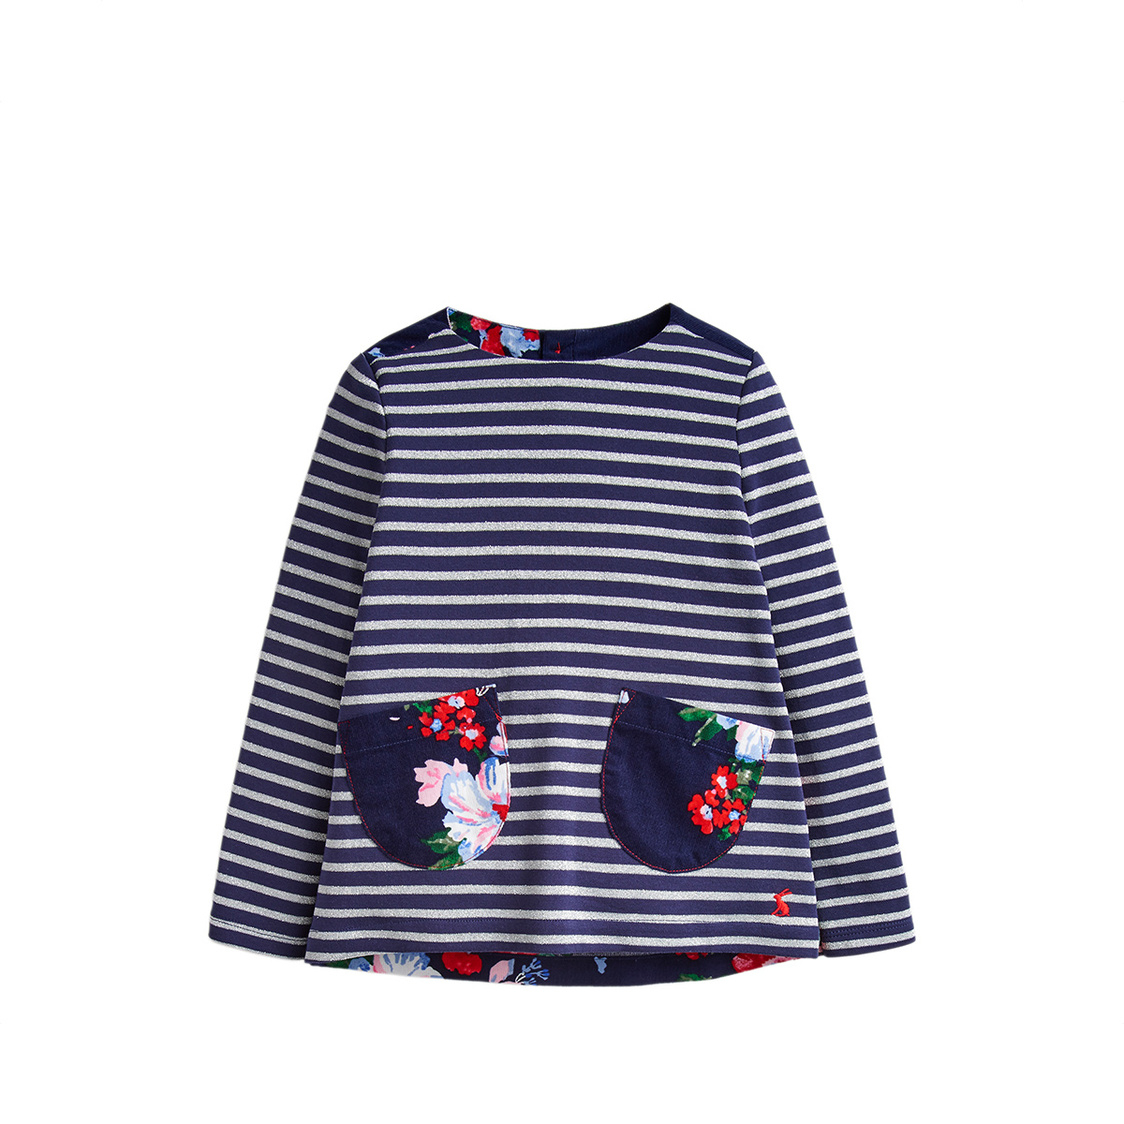 Tom Joule Ria Luxe Jersey Woven Mix Top 1-6 Years Navy Silver Stripe